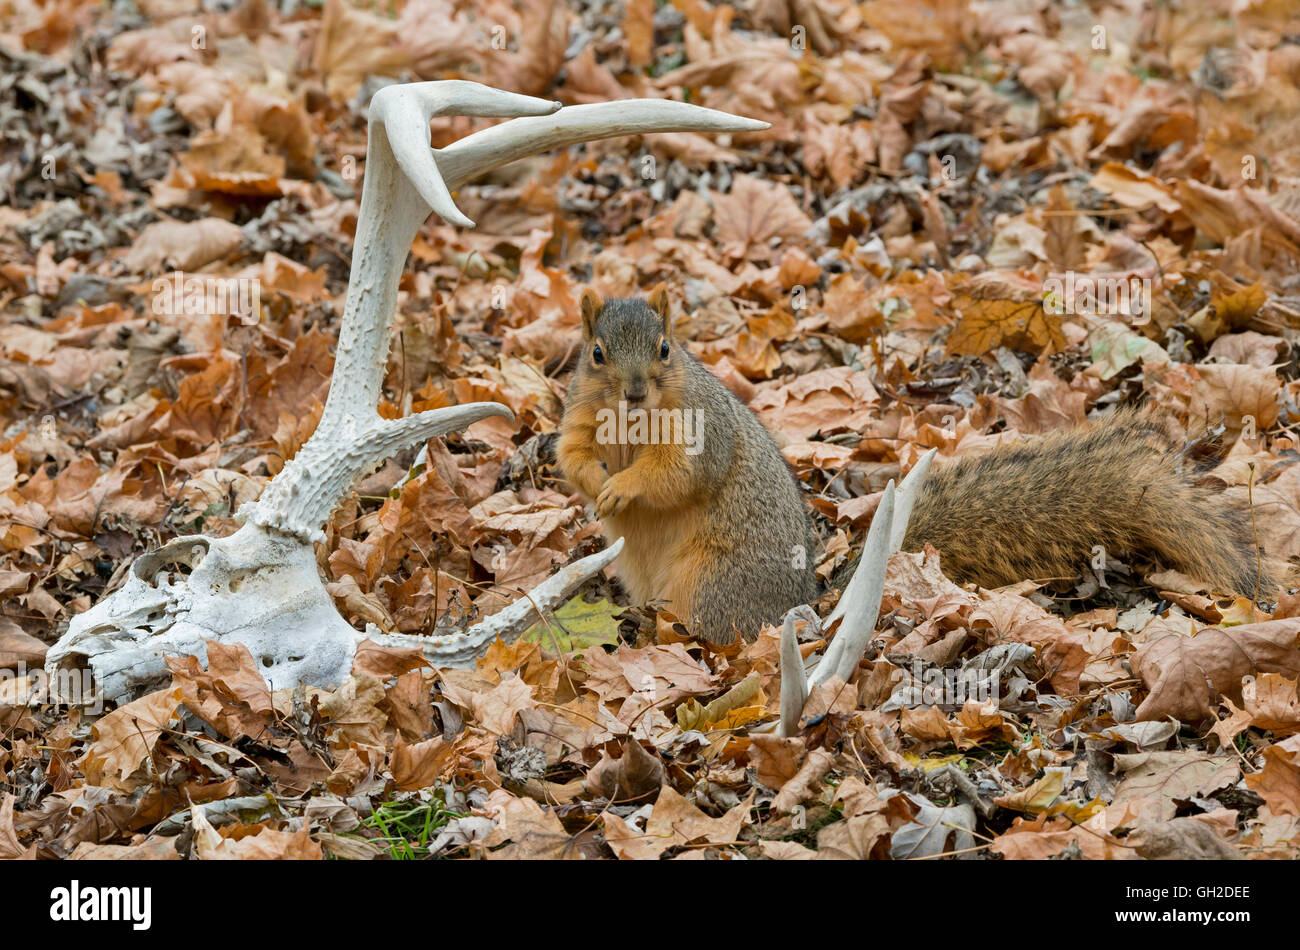 Eastern Fox Squirrel (Sciurus niger) on forest floor, and White-tailed Deer antlers and skull, Autumn, E North America - Stock Image